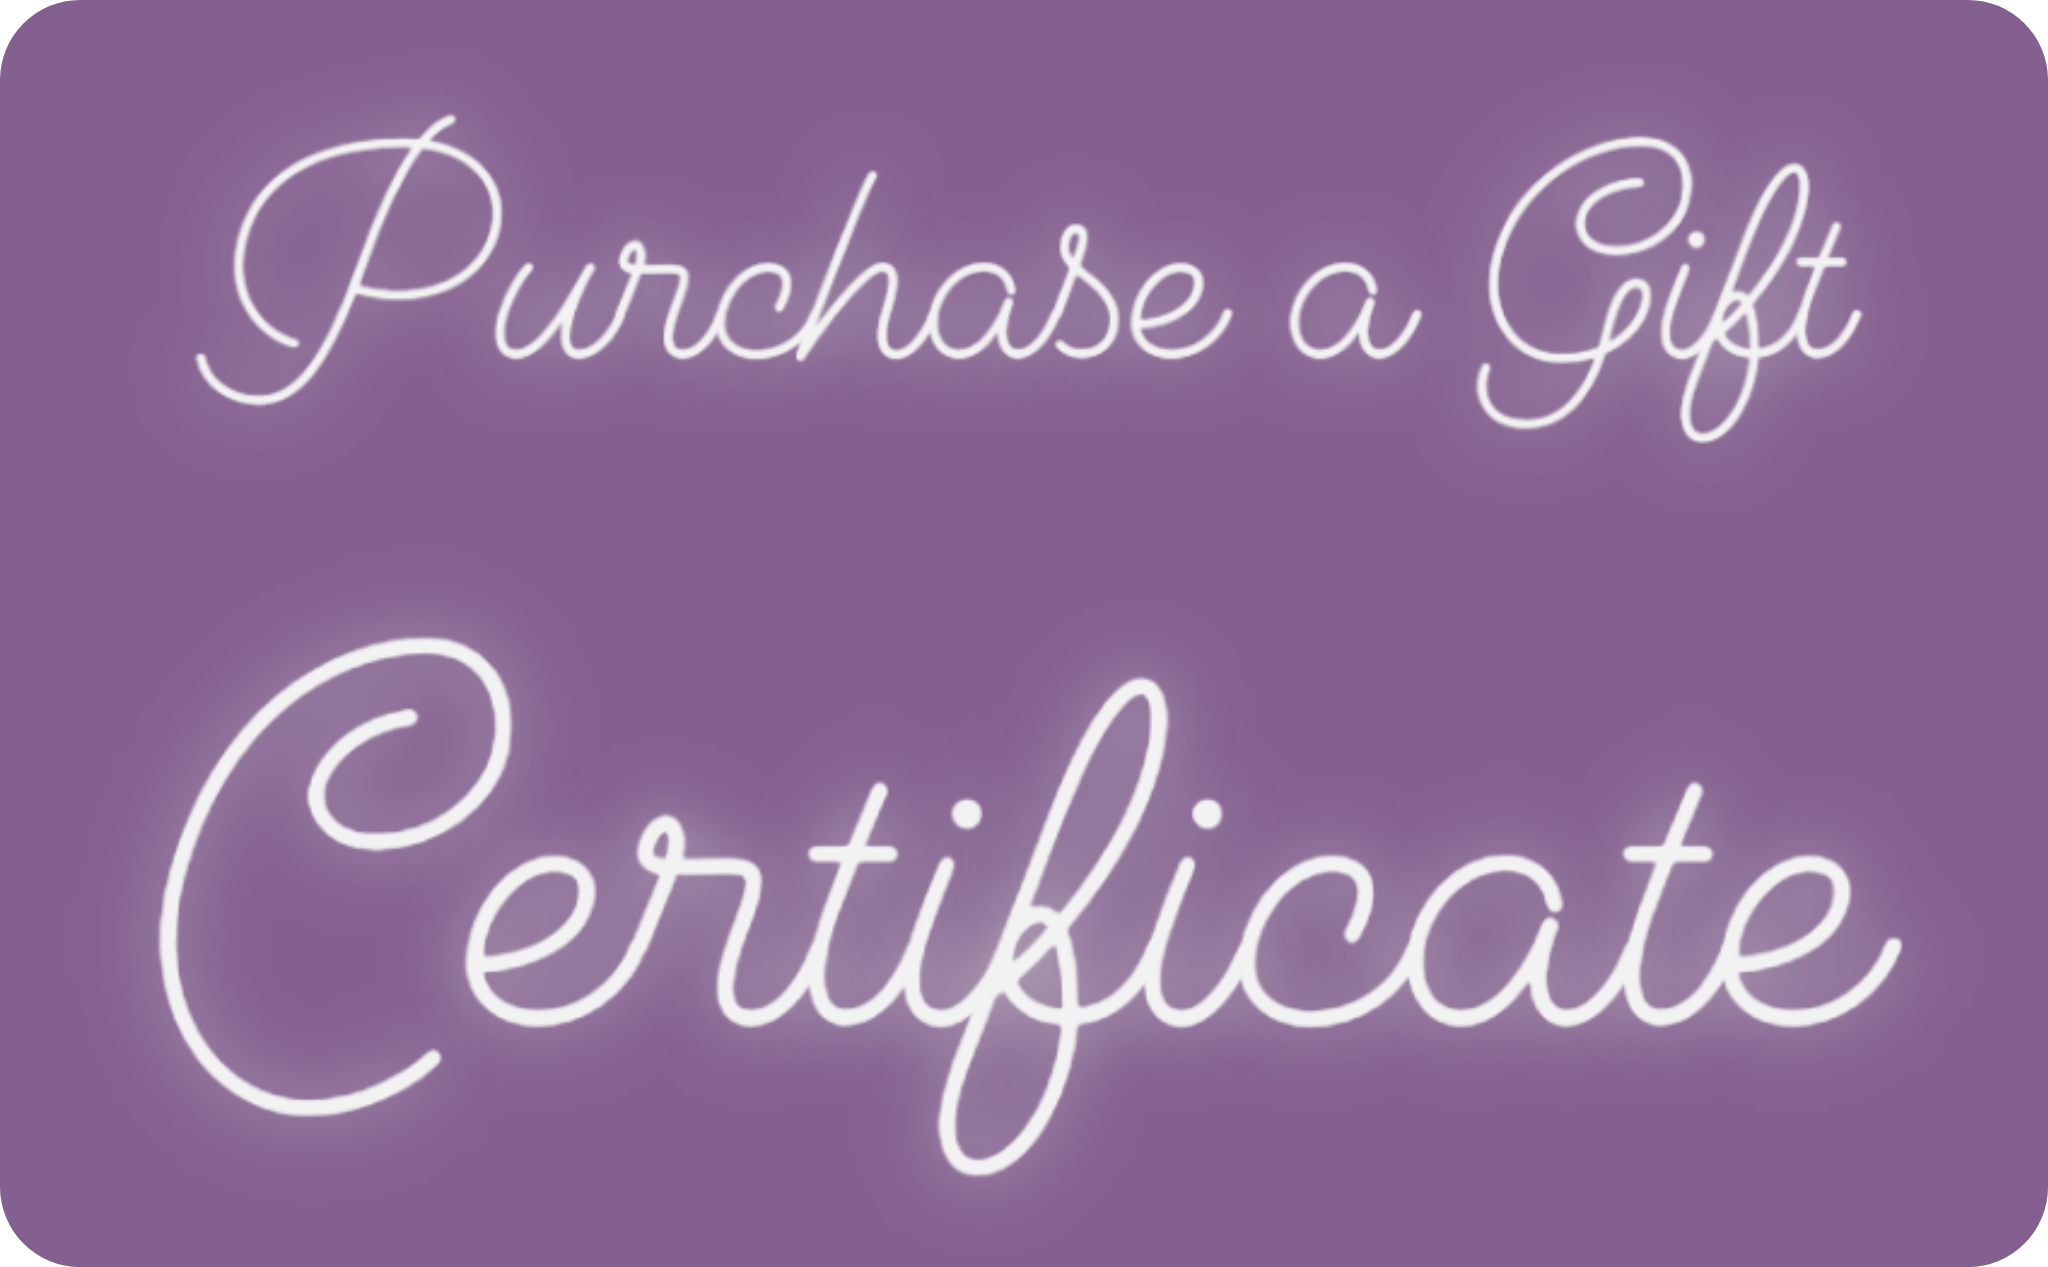 Design your gift certificate, preview it, and then send or print it immediately. It's fast and easy!